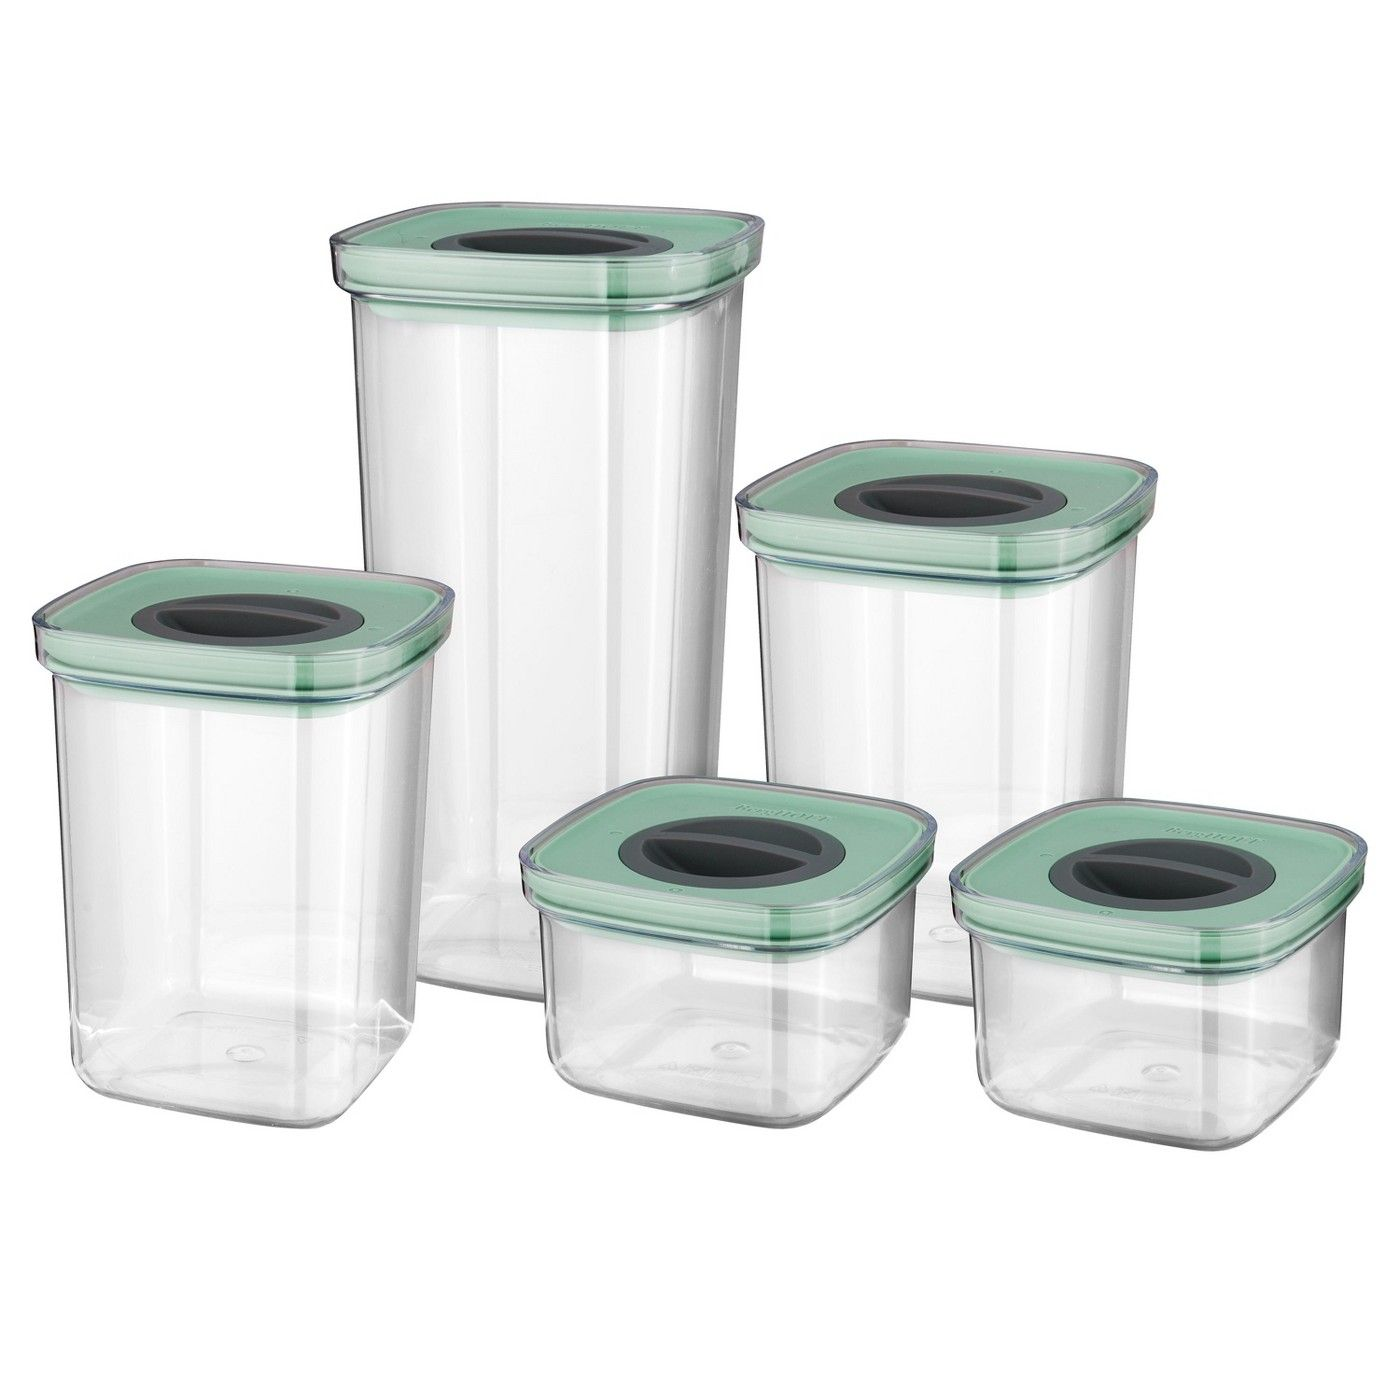 Berghoff Leo 5 Pc Smart Seal Food Container Set Green Food Storage Set Food Storage Container Set Food Container Set